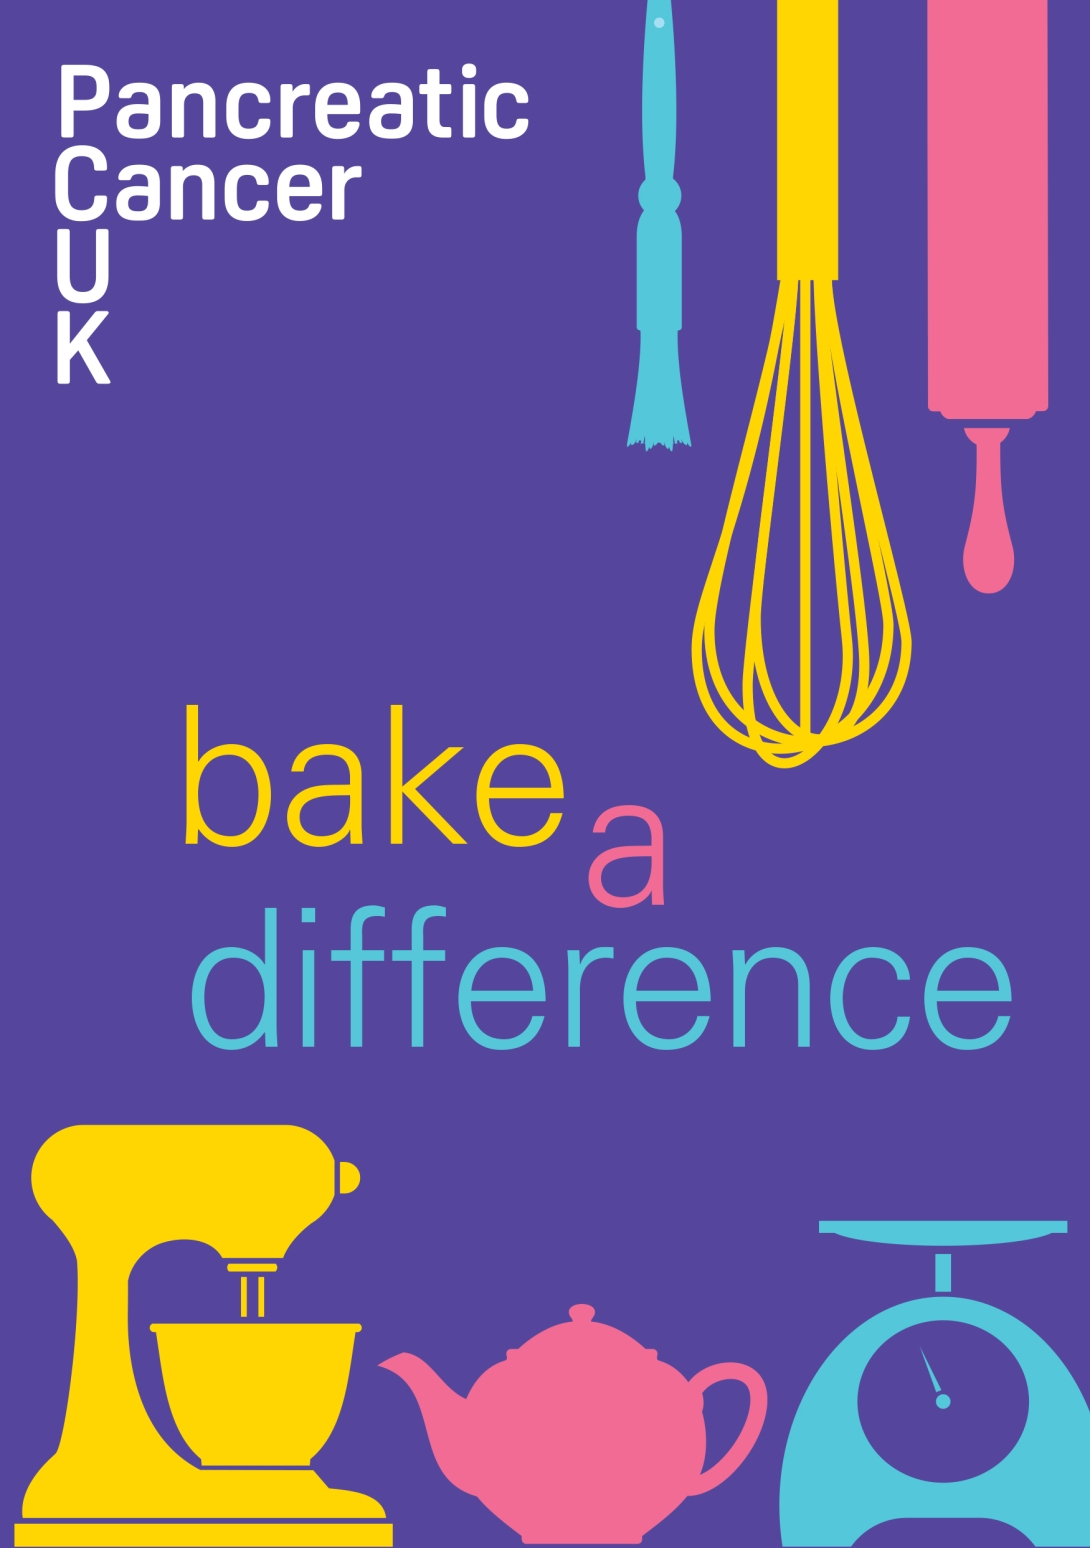 bake-a-difference-booklet-a-w-12-09